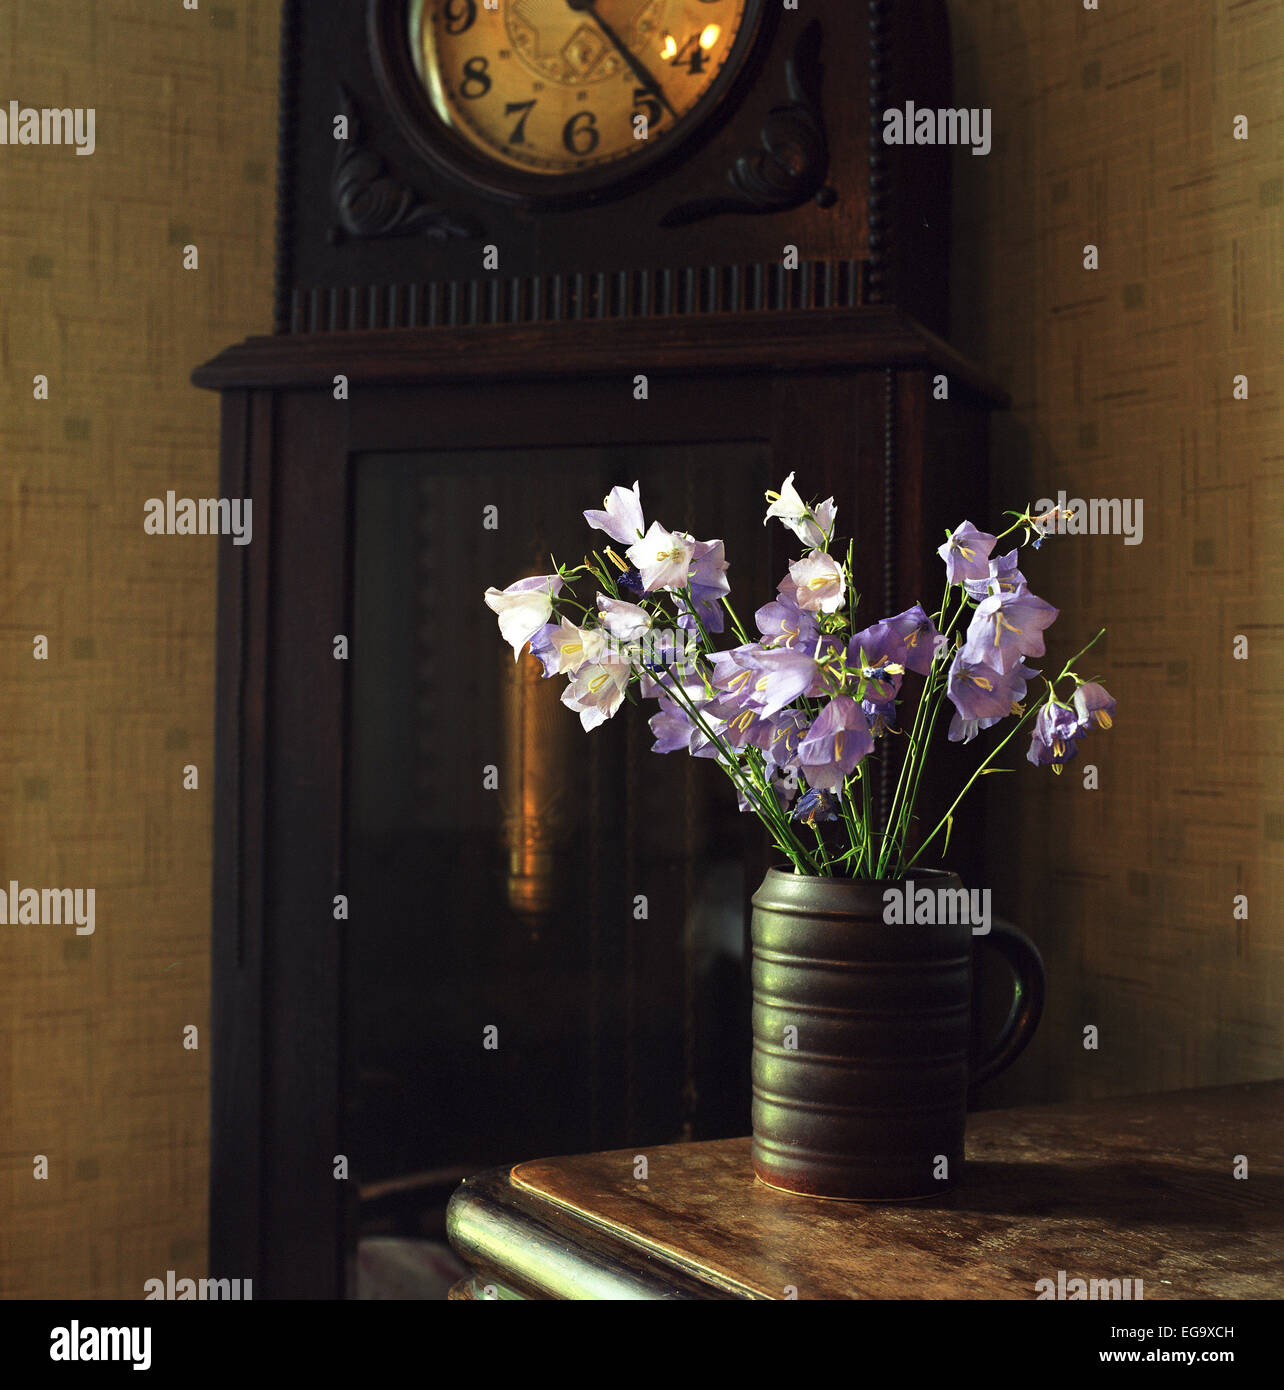 Bunch of bluebells in vase on table lit by rising sun. Medium format film. - Stock Image